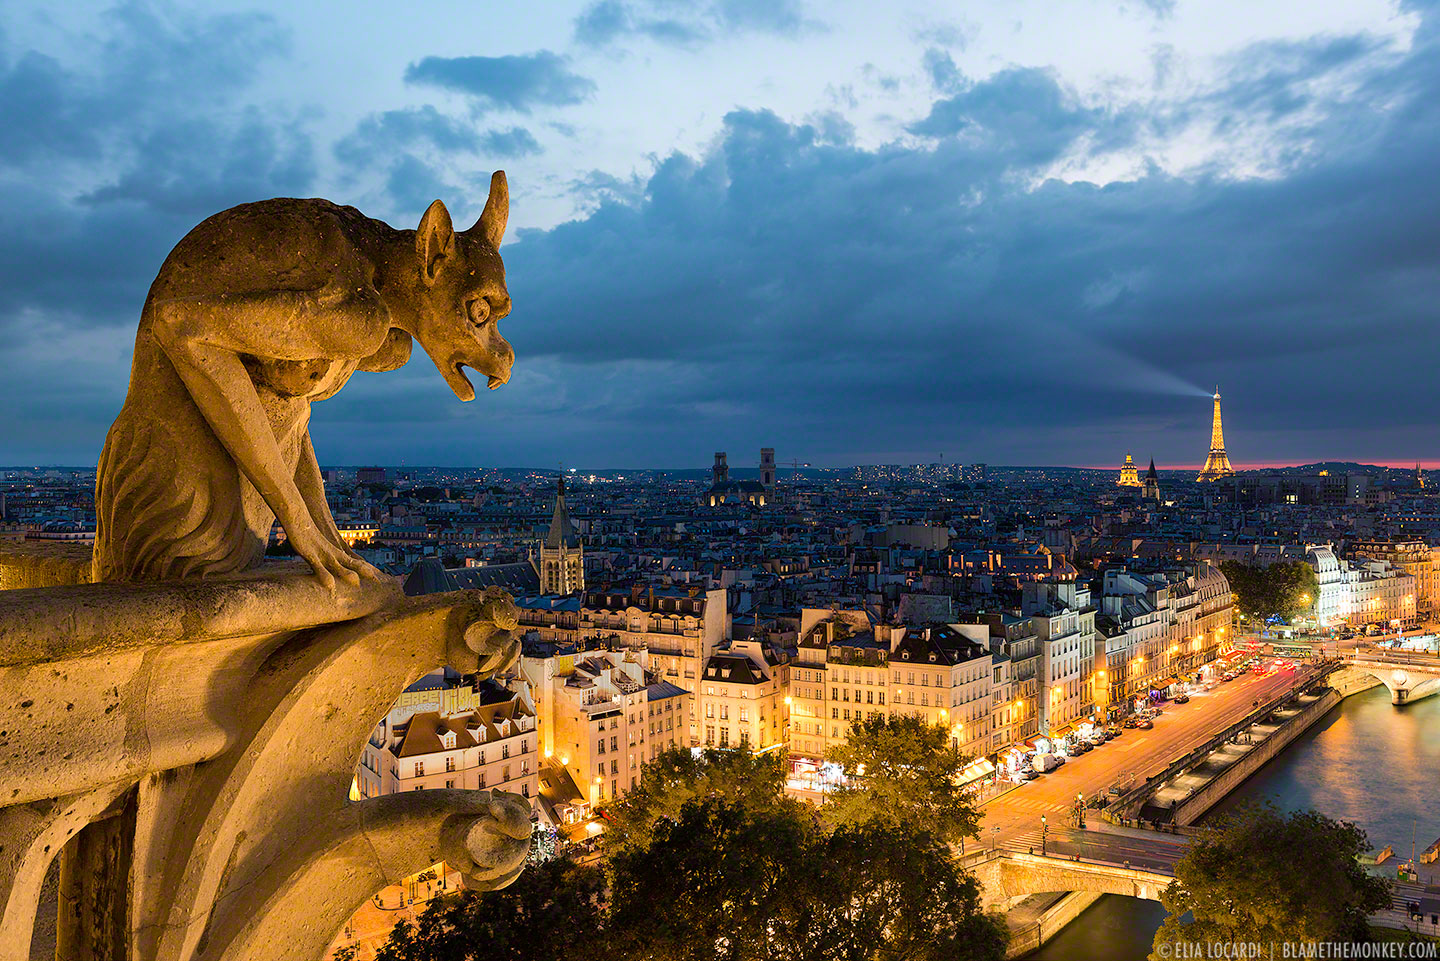 From the top of Notre Dame, the old stone gargoyles patiently watch over the city of Paris.